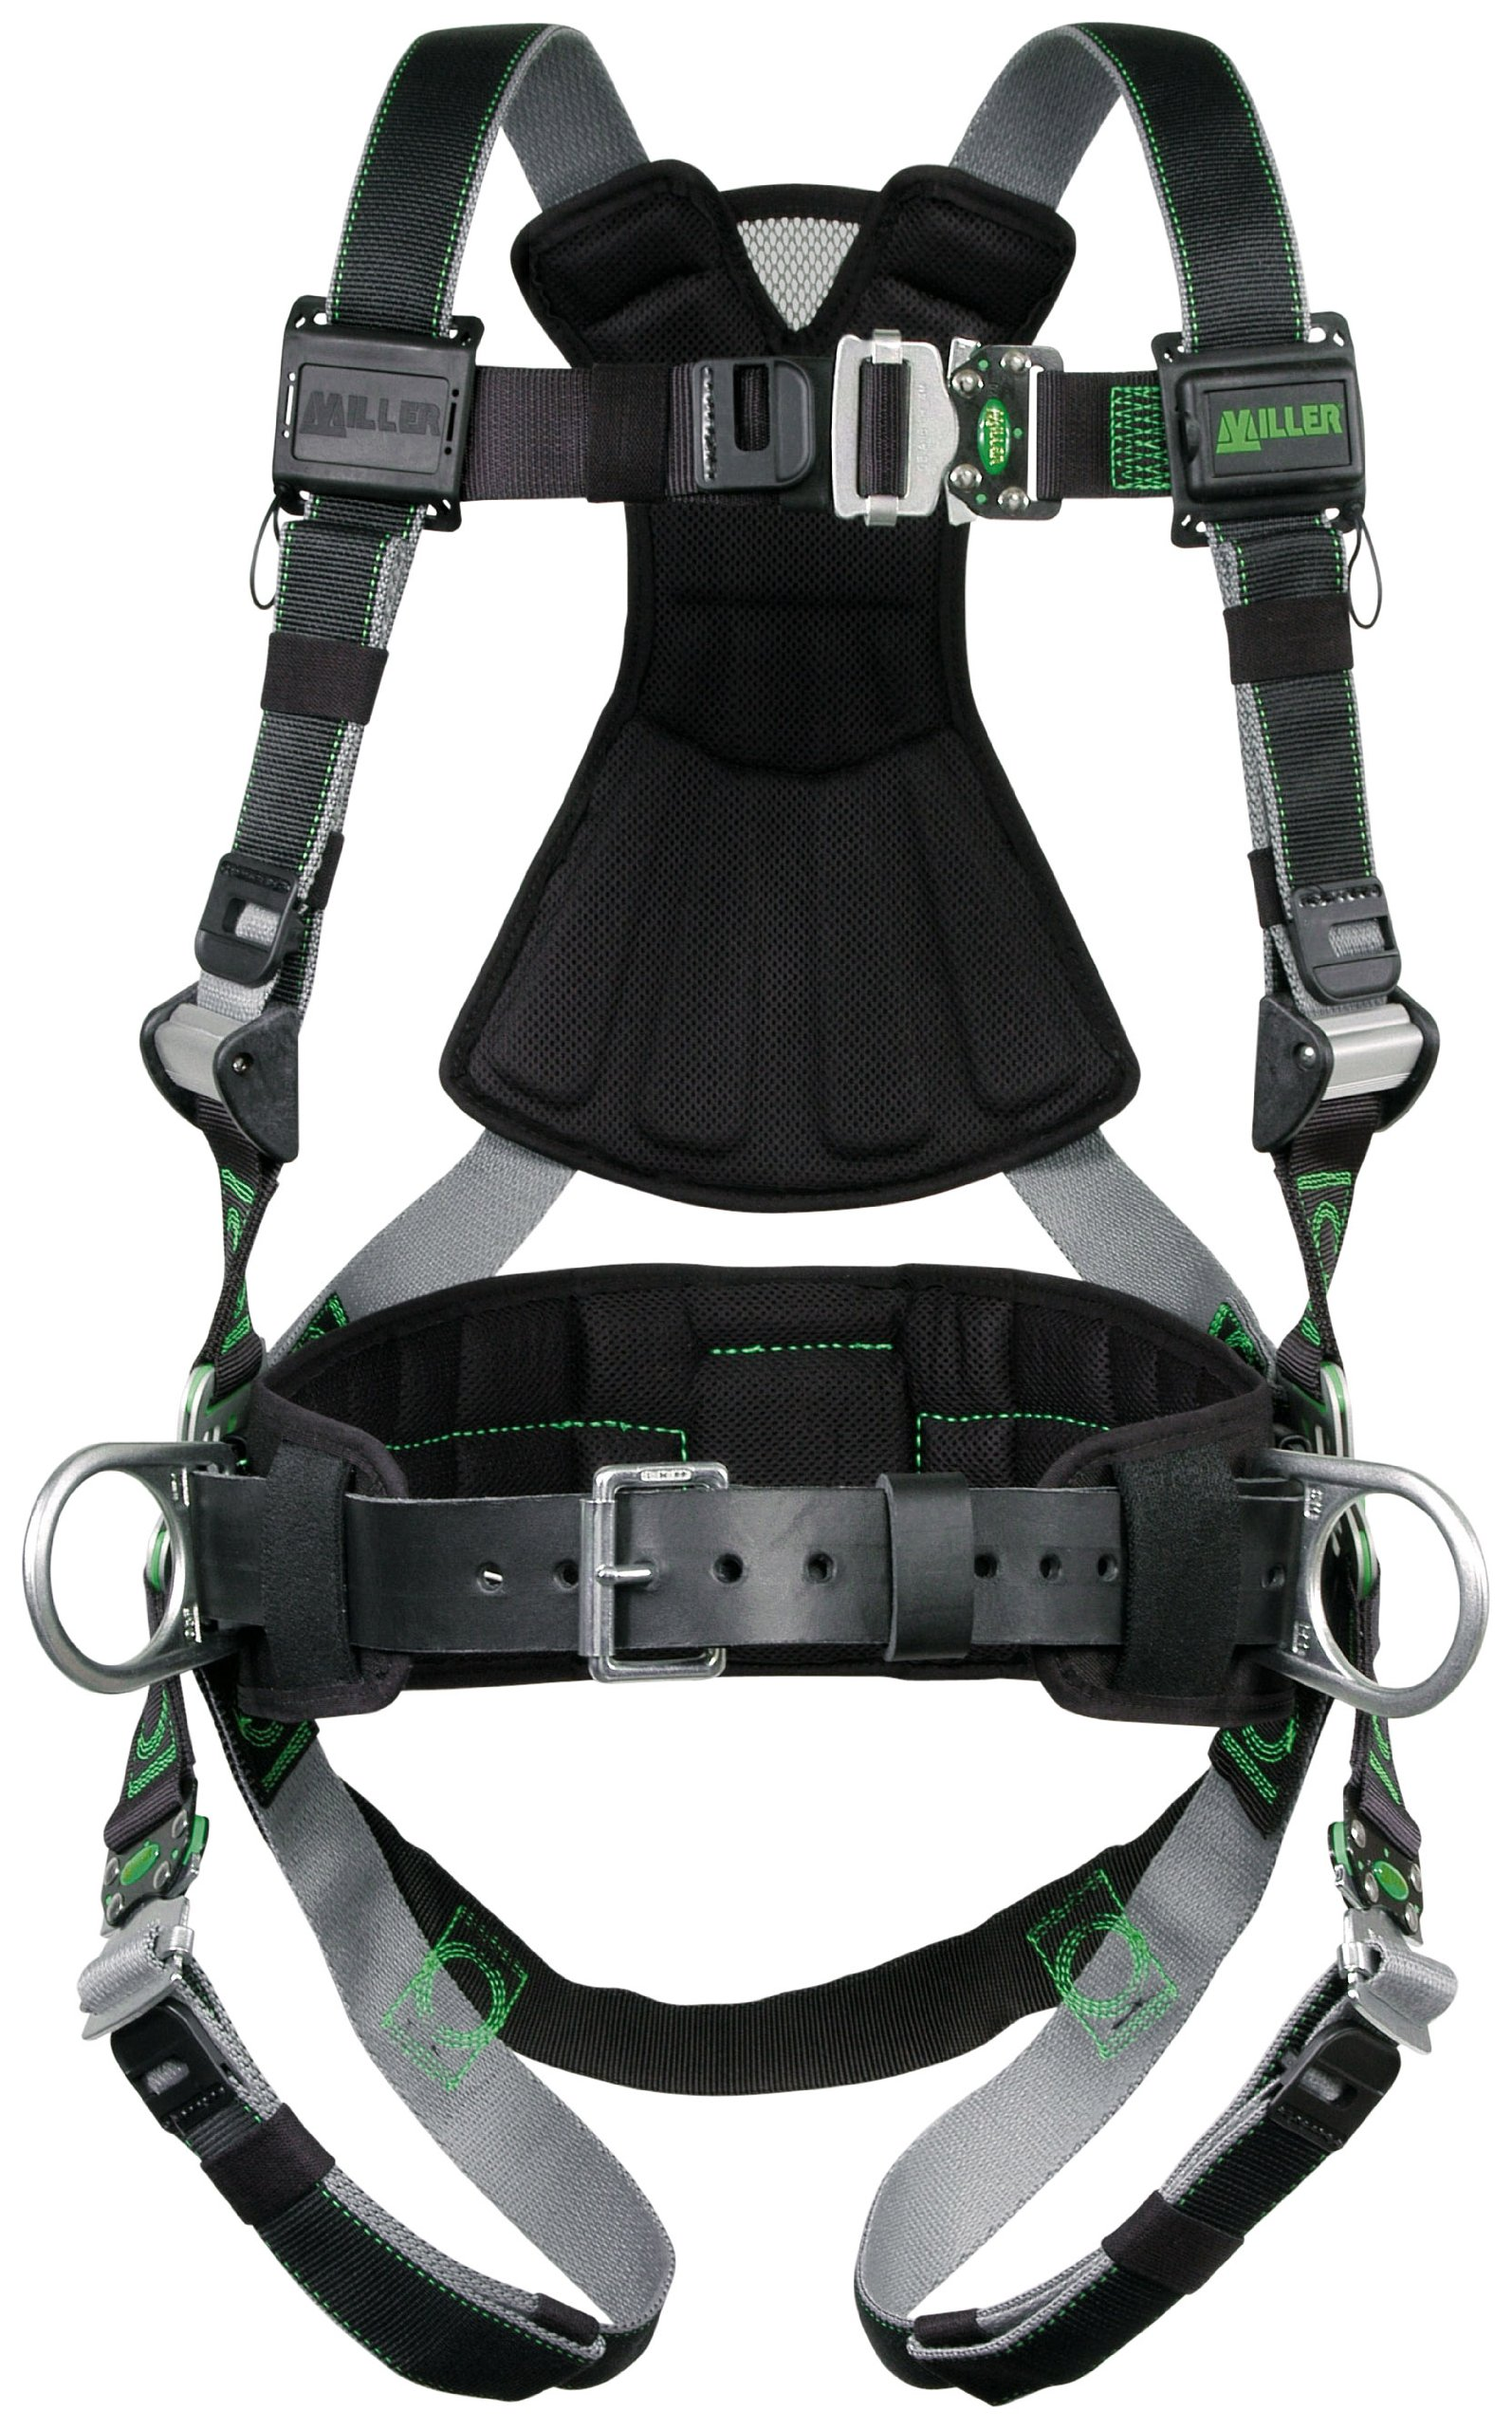 Miller Revolution Full Body Safety Harness with Quick Connectors, Removable Belt, Side D-Rings & Pad, Universal Size-Large/XL, 400 lb. Capacity (RDT-QC-BDP/UBK) by Honeywell